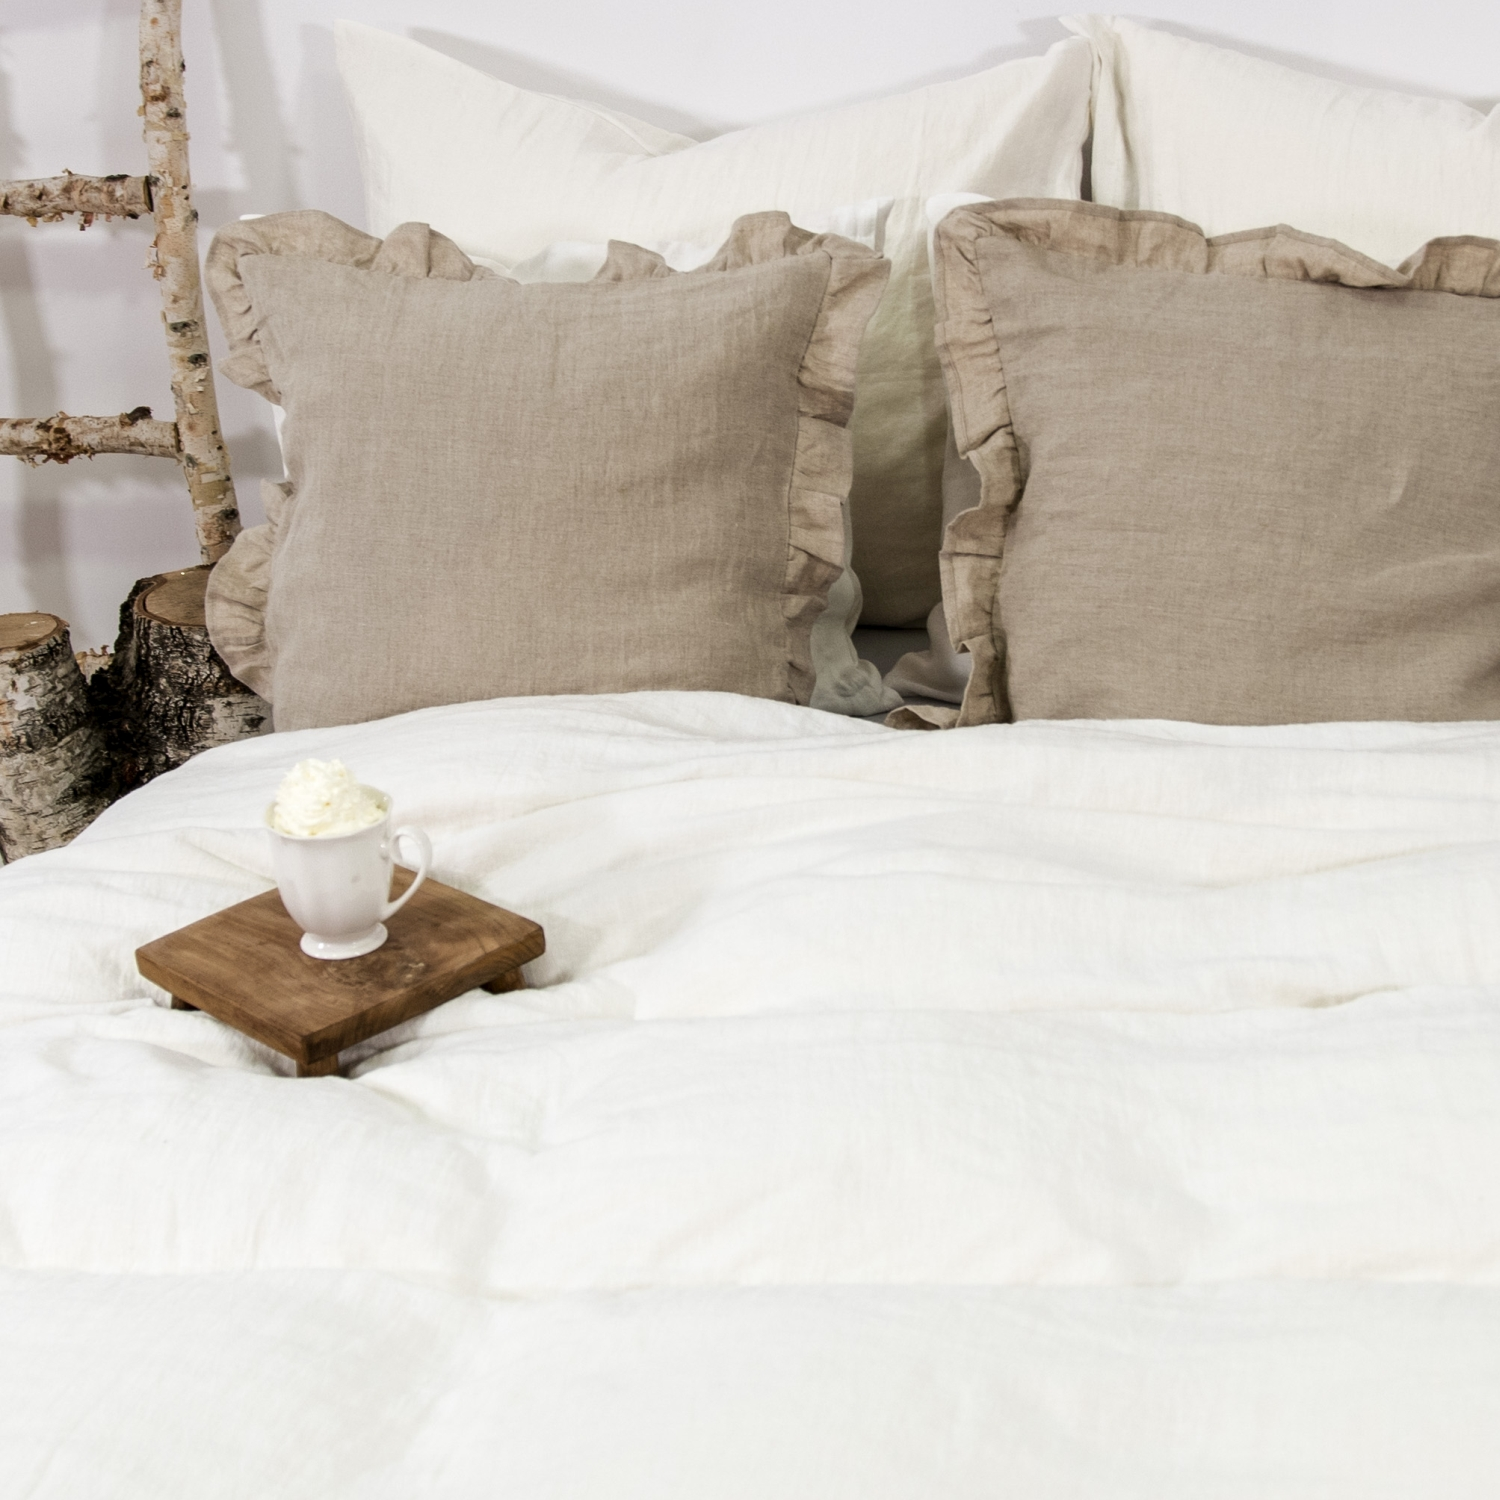 Soft white linen bedding.